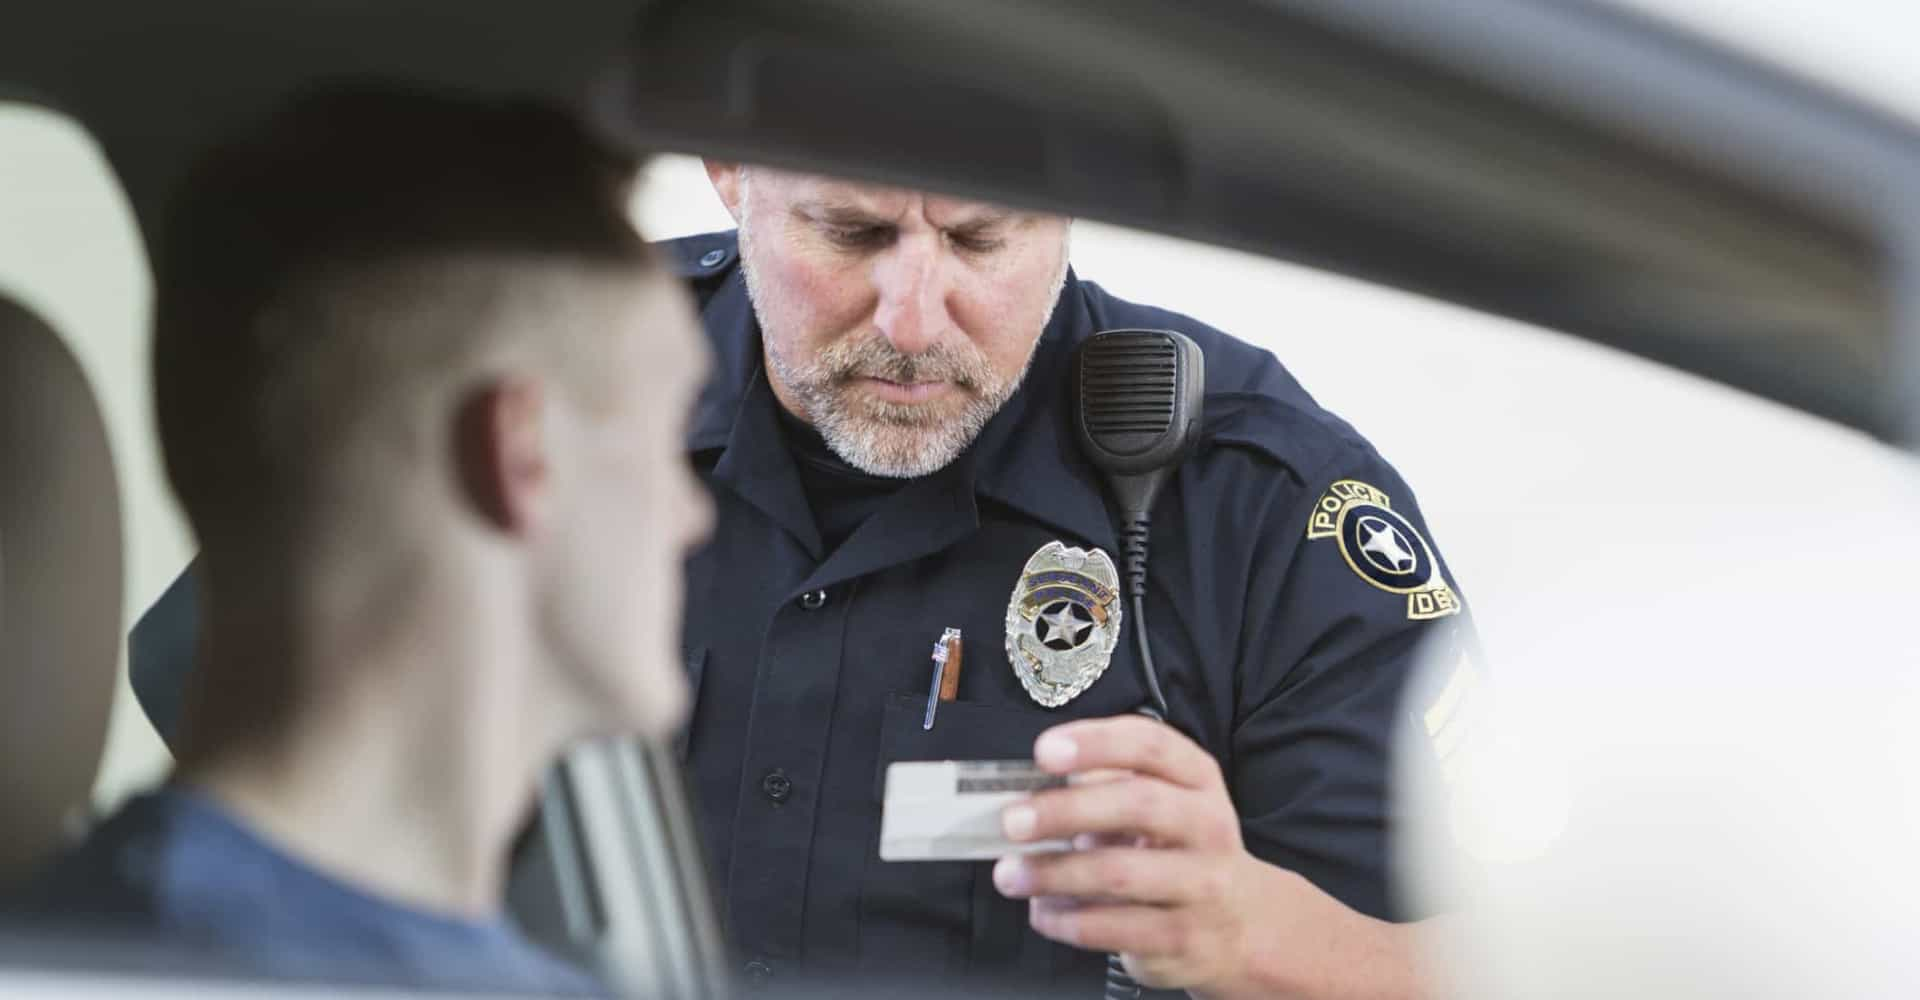 Siri can now automatically record your police interactions